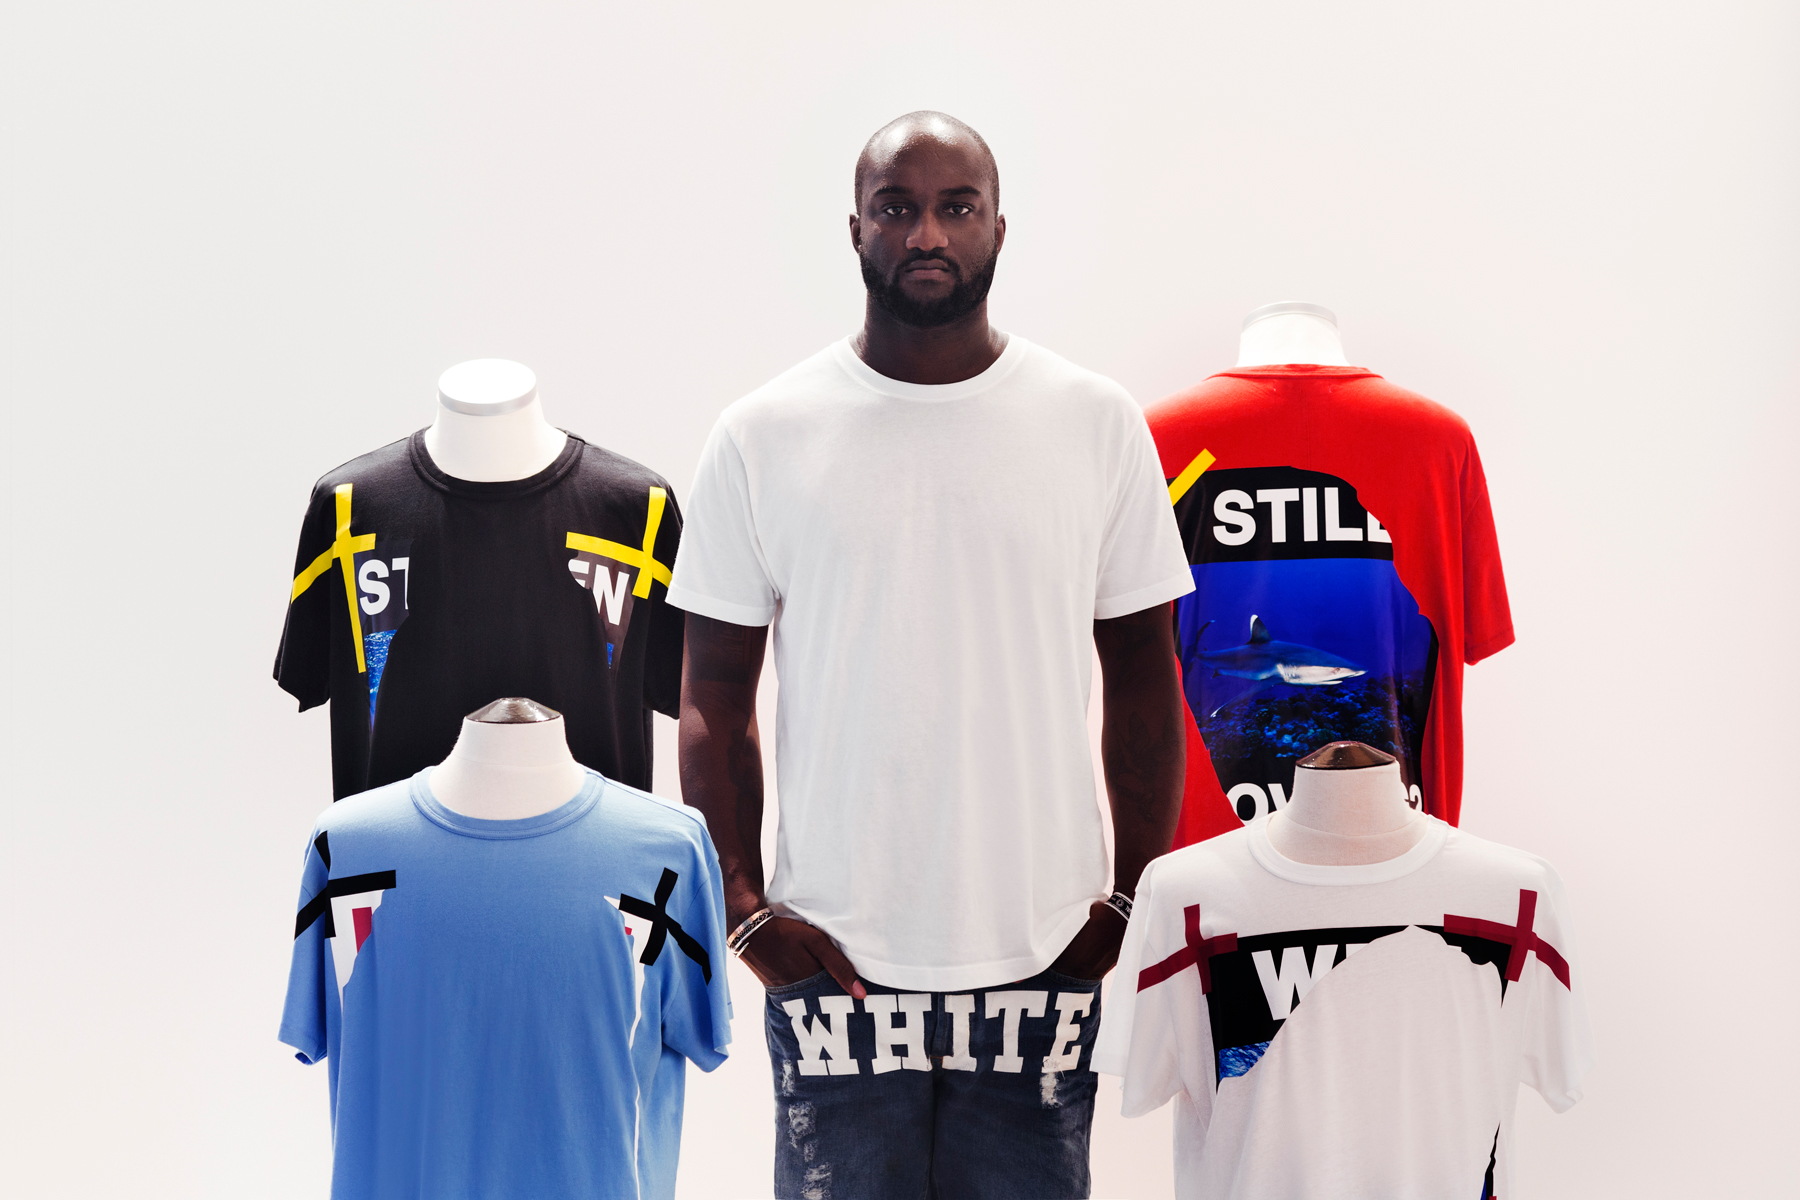 off white c o virgil abloh exhibit ciff